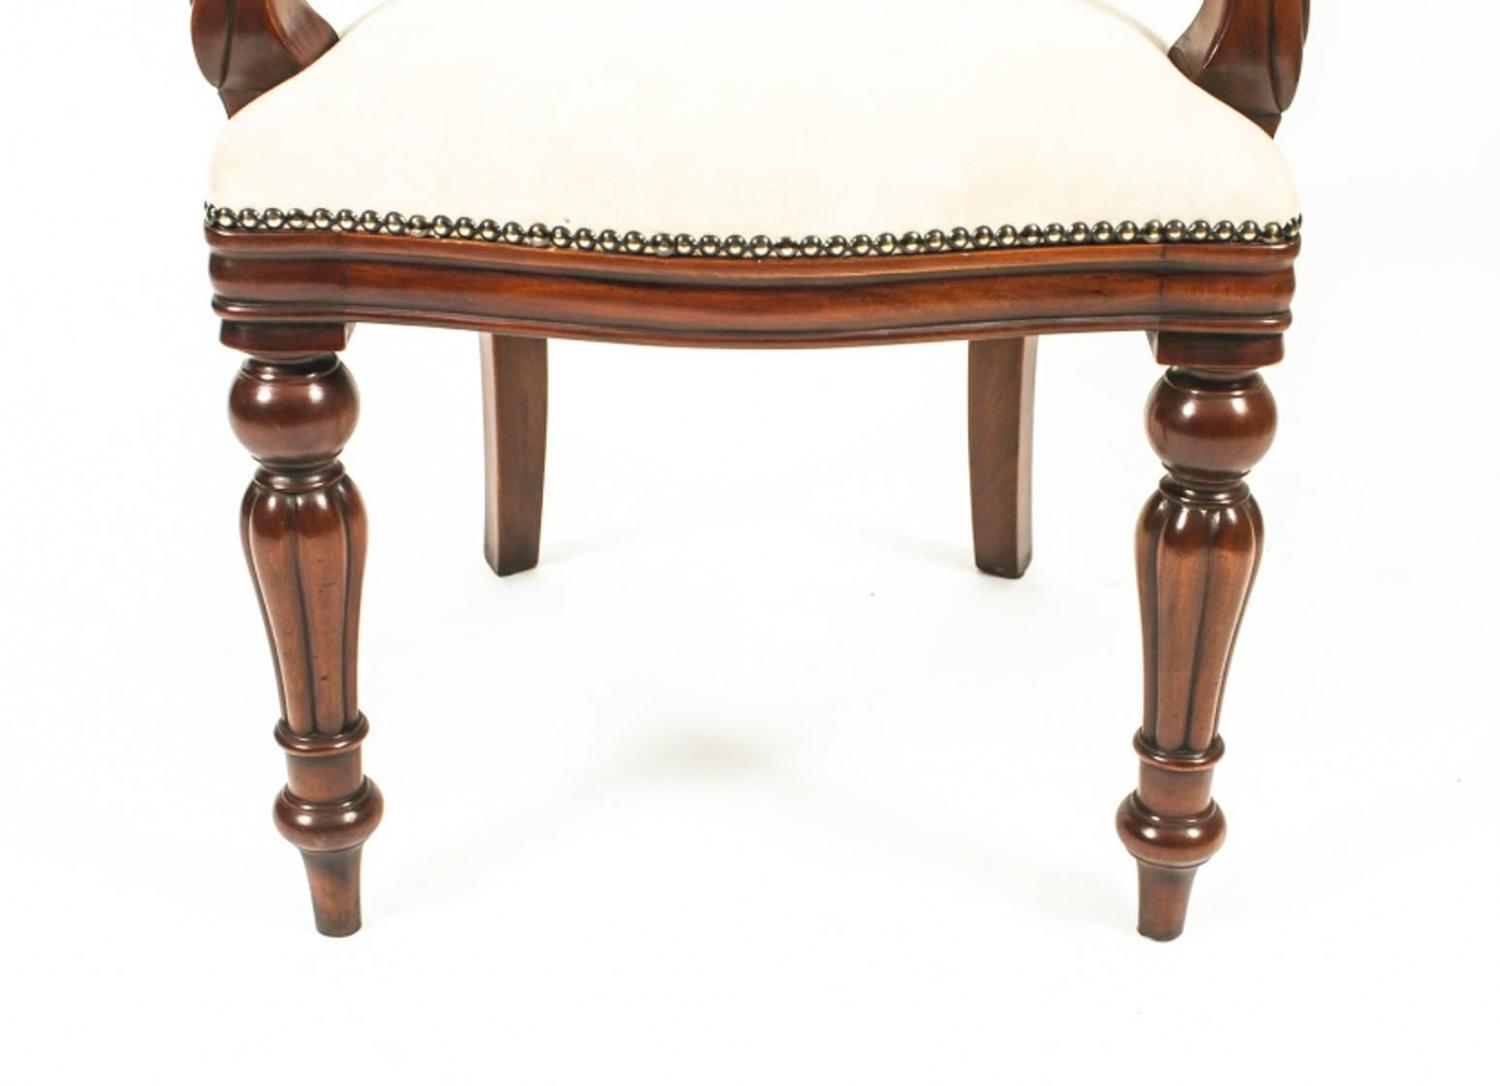 Antique Extending Dining Table 14 Chairs, circa 1880 For ...